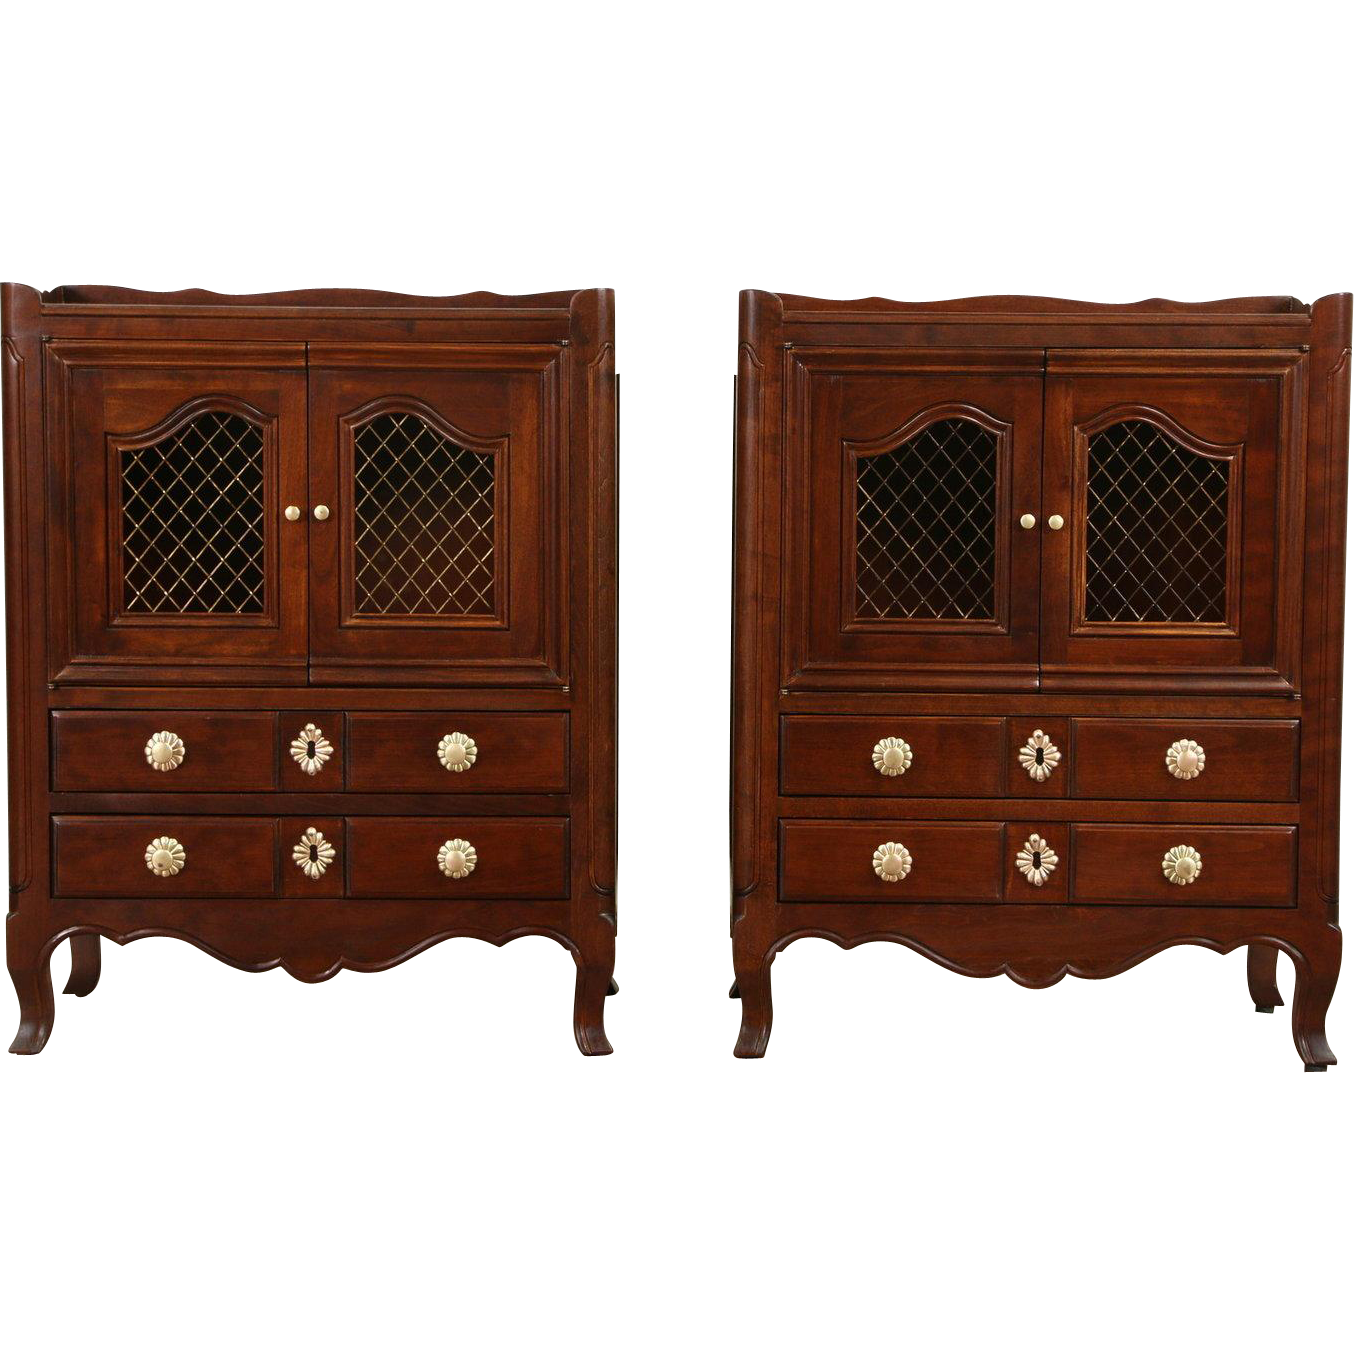 Pair of Tradtional Vintage Cherry Nightstands or End Tables, Signed Widdicomb